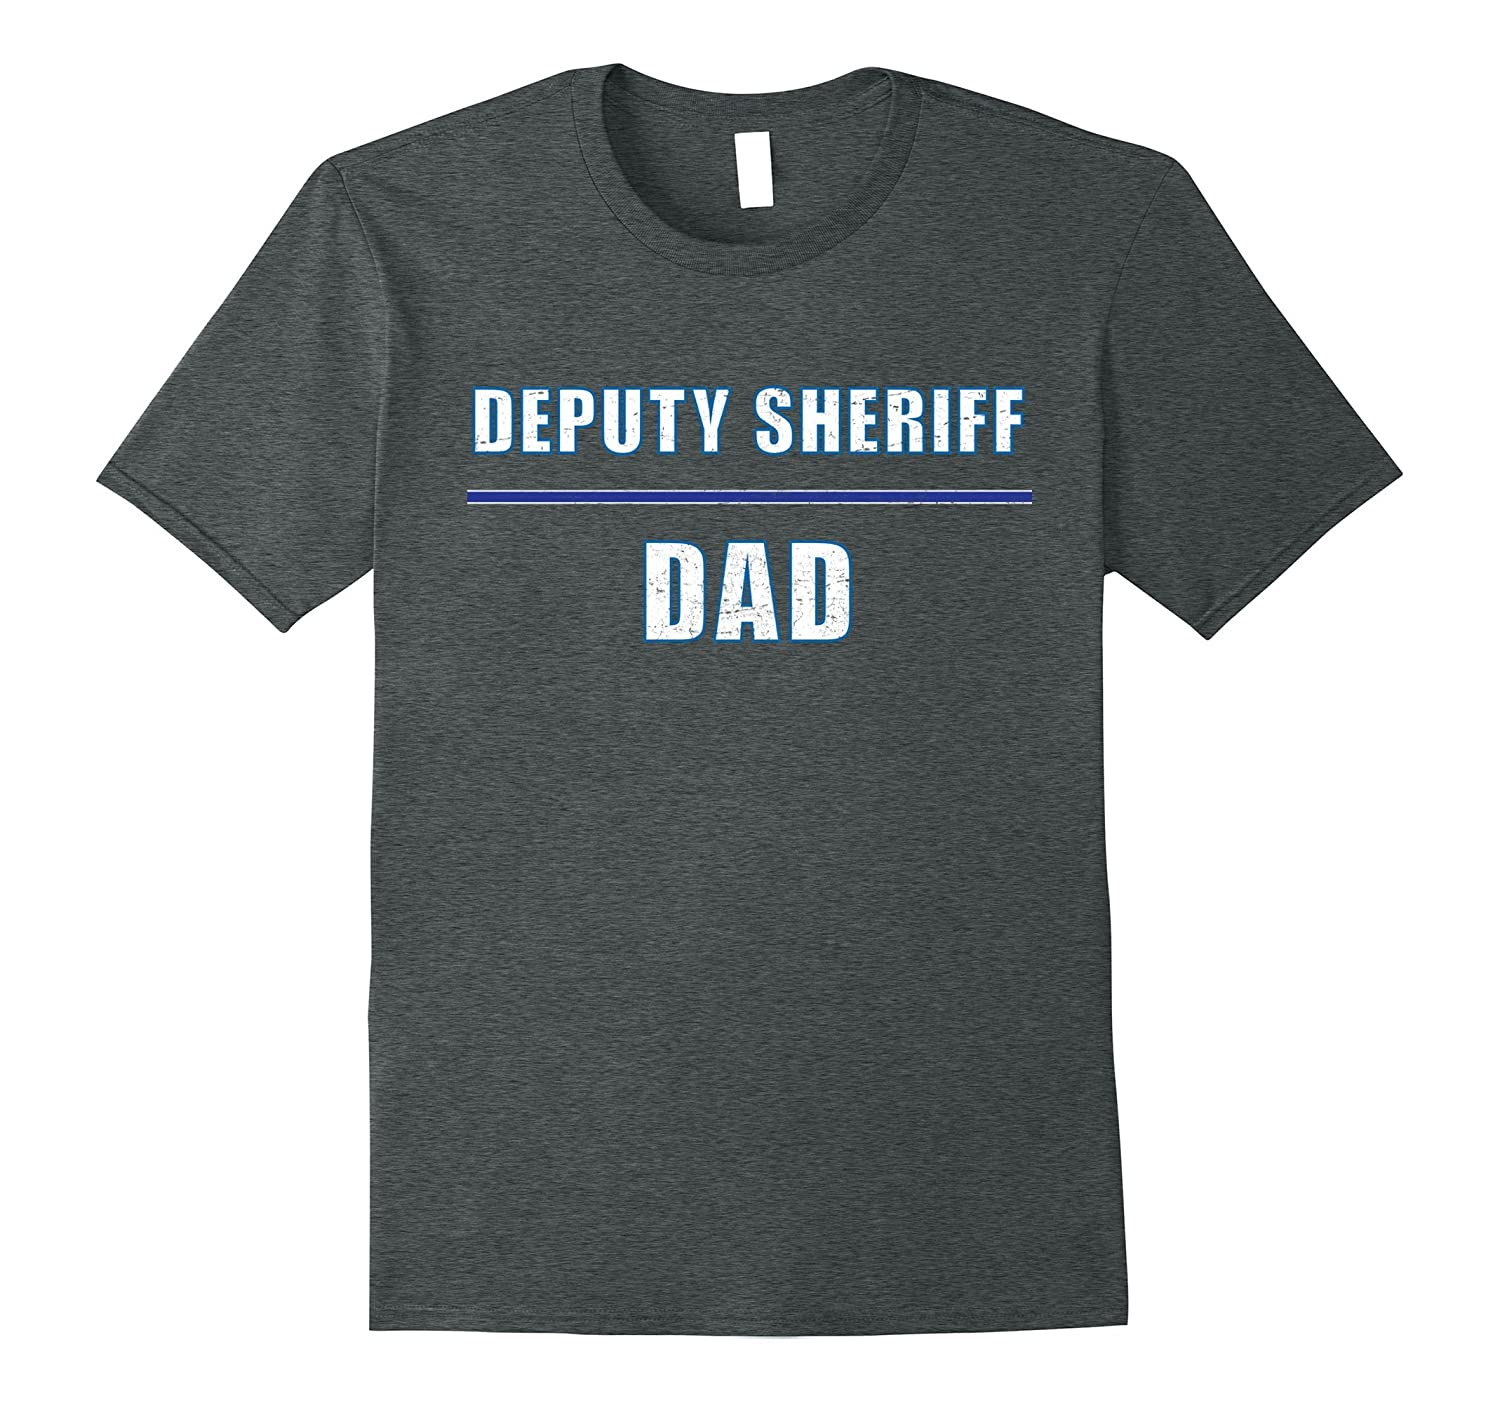 """Deputy Sheriff Dad"" awesome t-shirt for the hero you know"